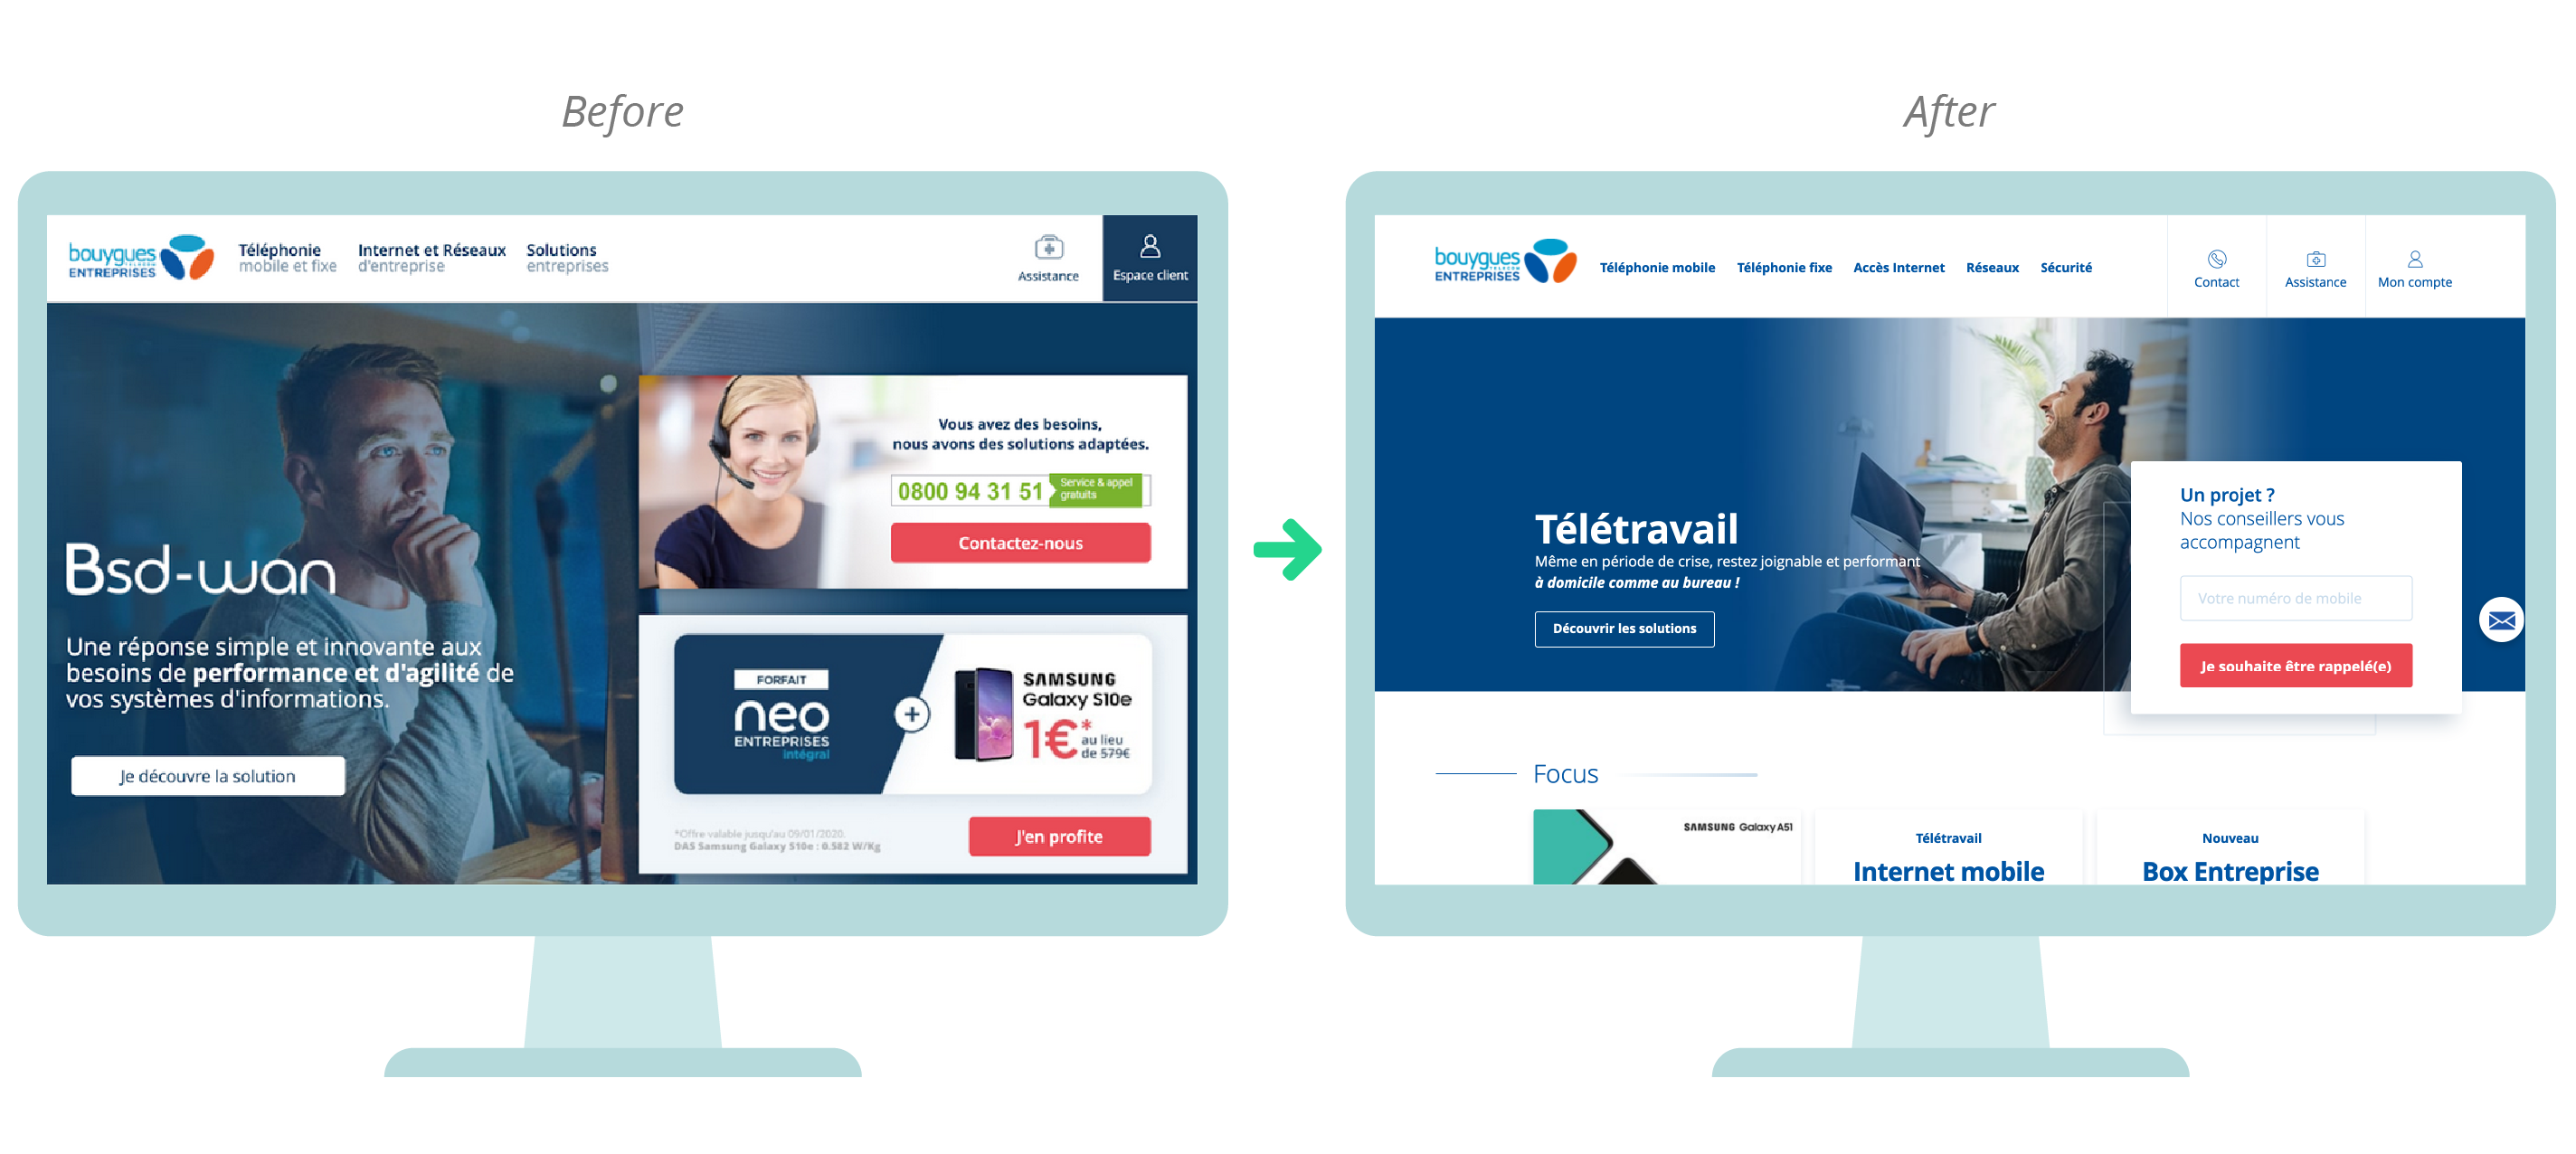 Before / After the redesign with the new menu generated by the focus group card sort